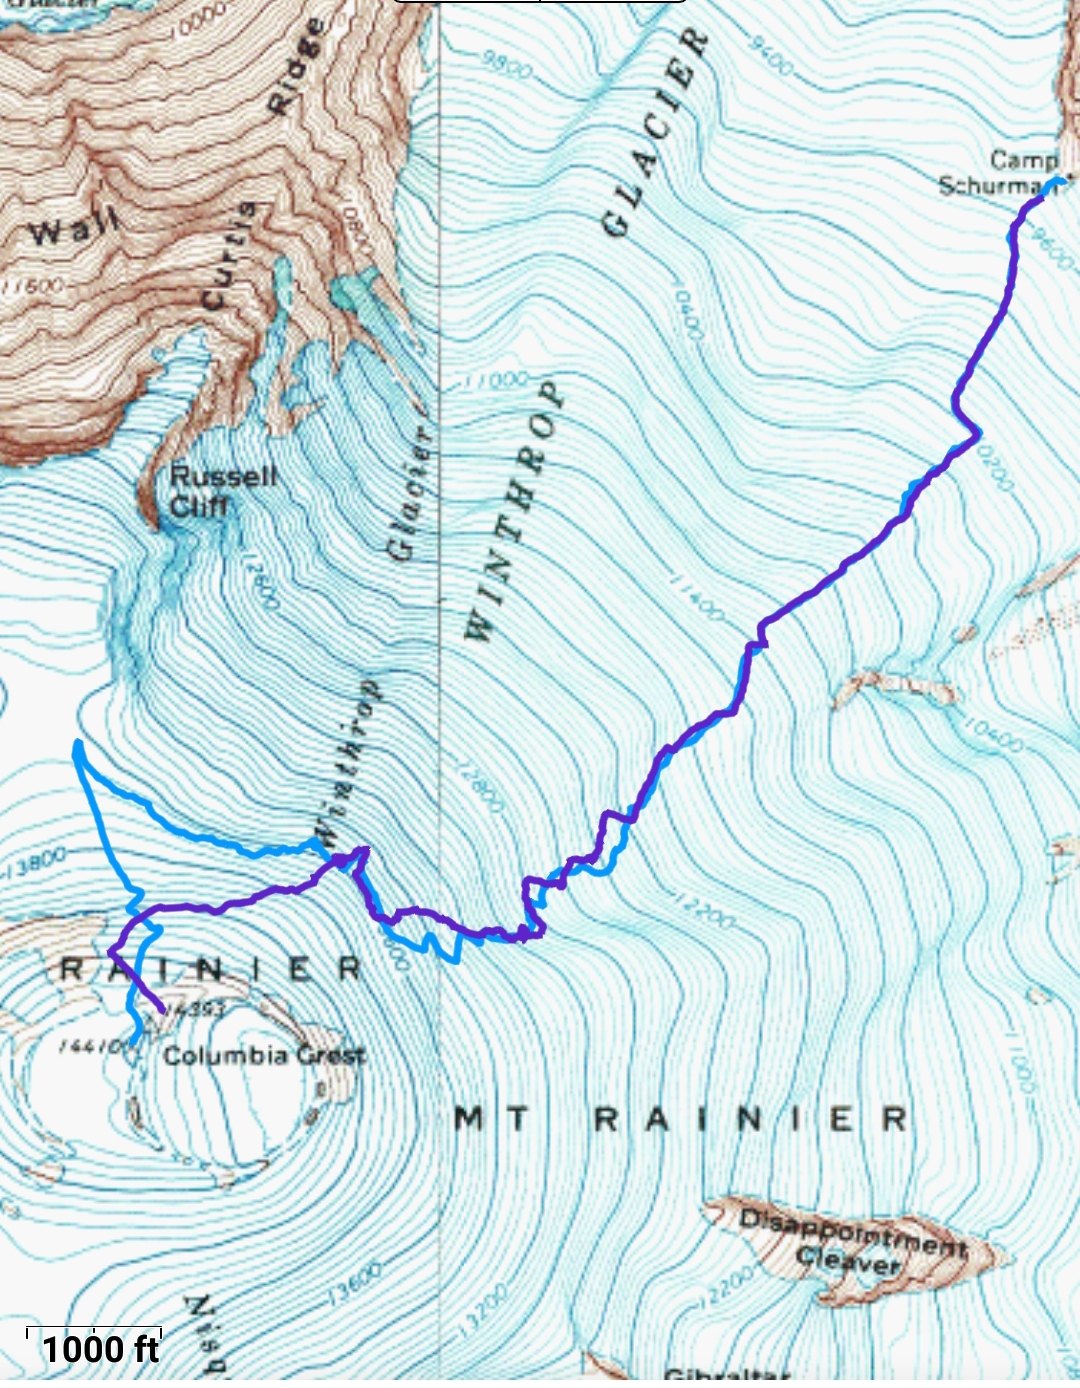 light blue indicates the most recent route to the winthrop saddle